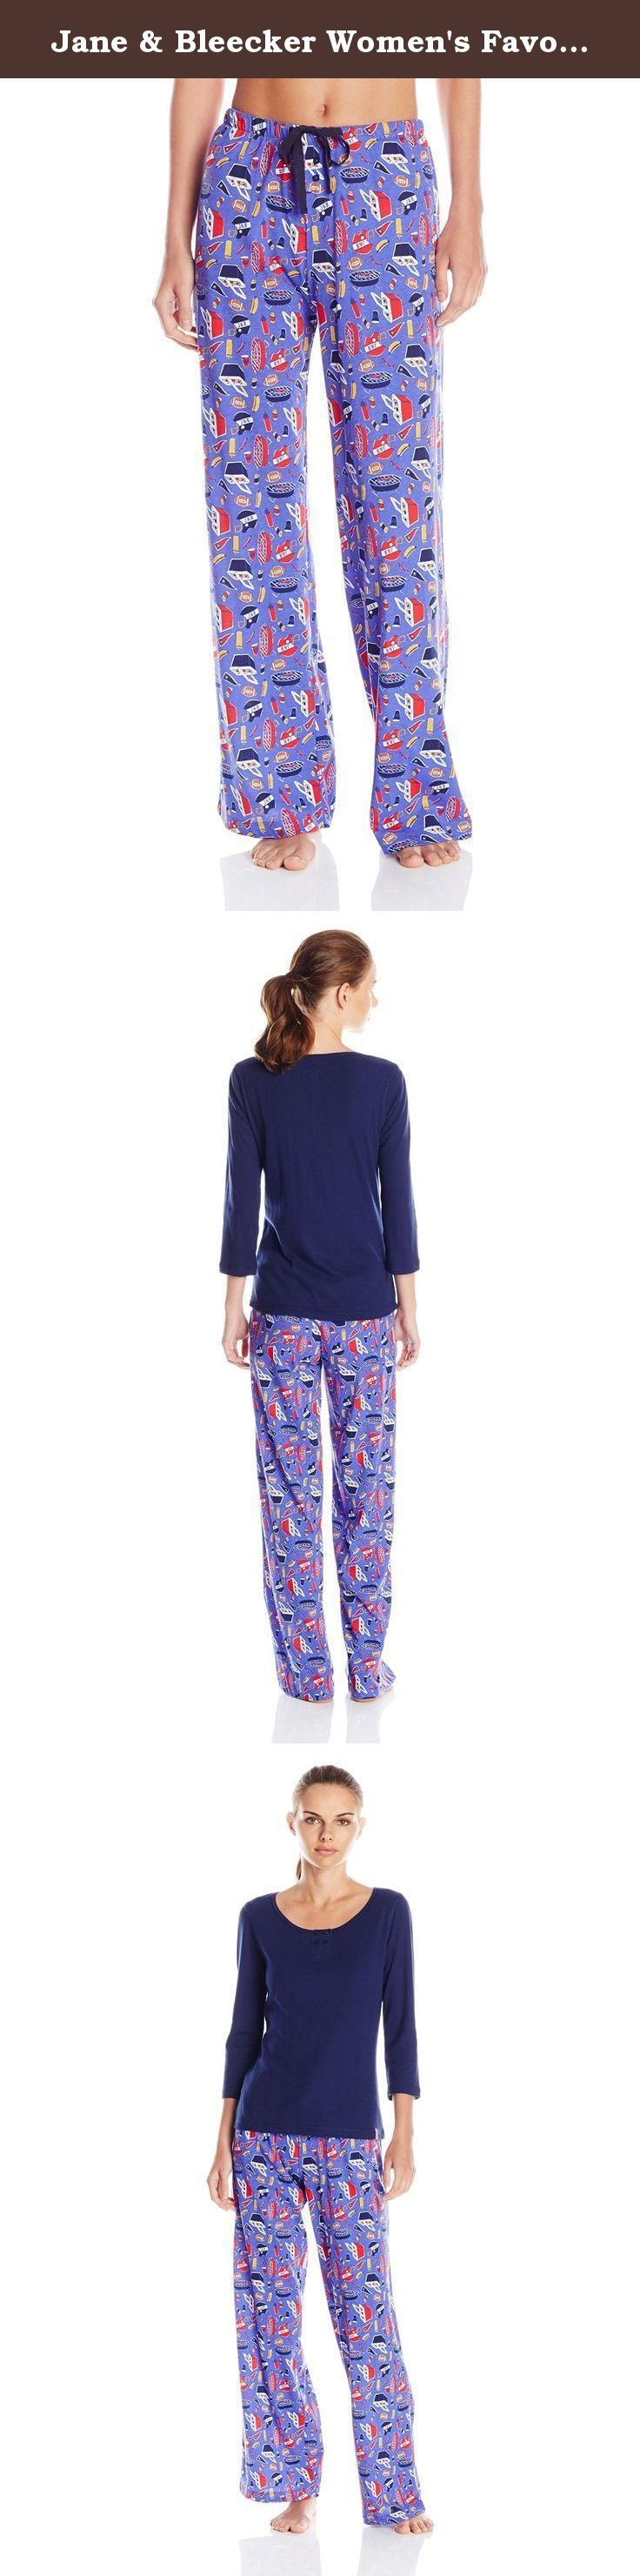 Jane & Bleecker Women's Favortie Rib Tee and Super Soft Jersey Pant Set, Tailgate, X-Large. Lightweight yet super cozy, the Jane and bleecker favorite rib tee is an everyday favorite paired with the Jane and bleecker super soft jersey pant in this pajama set.